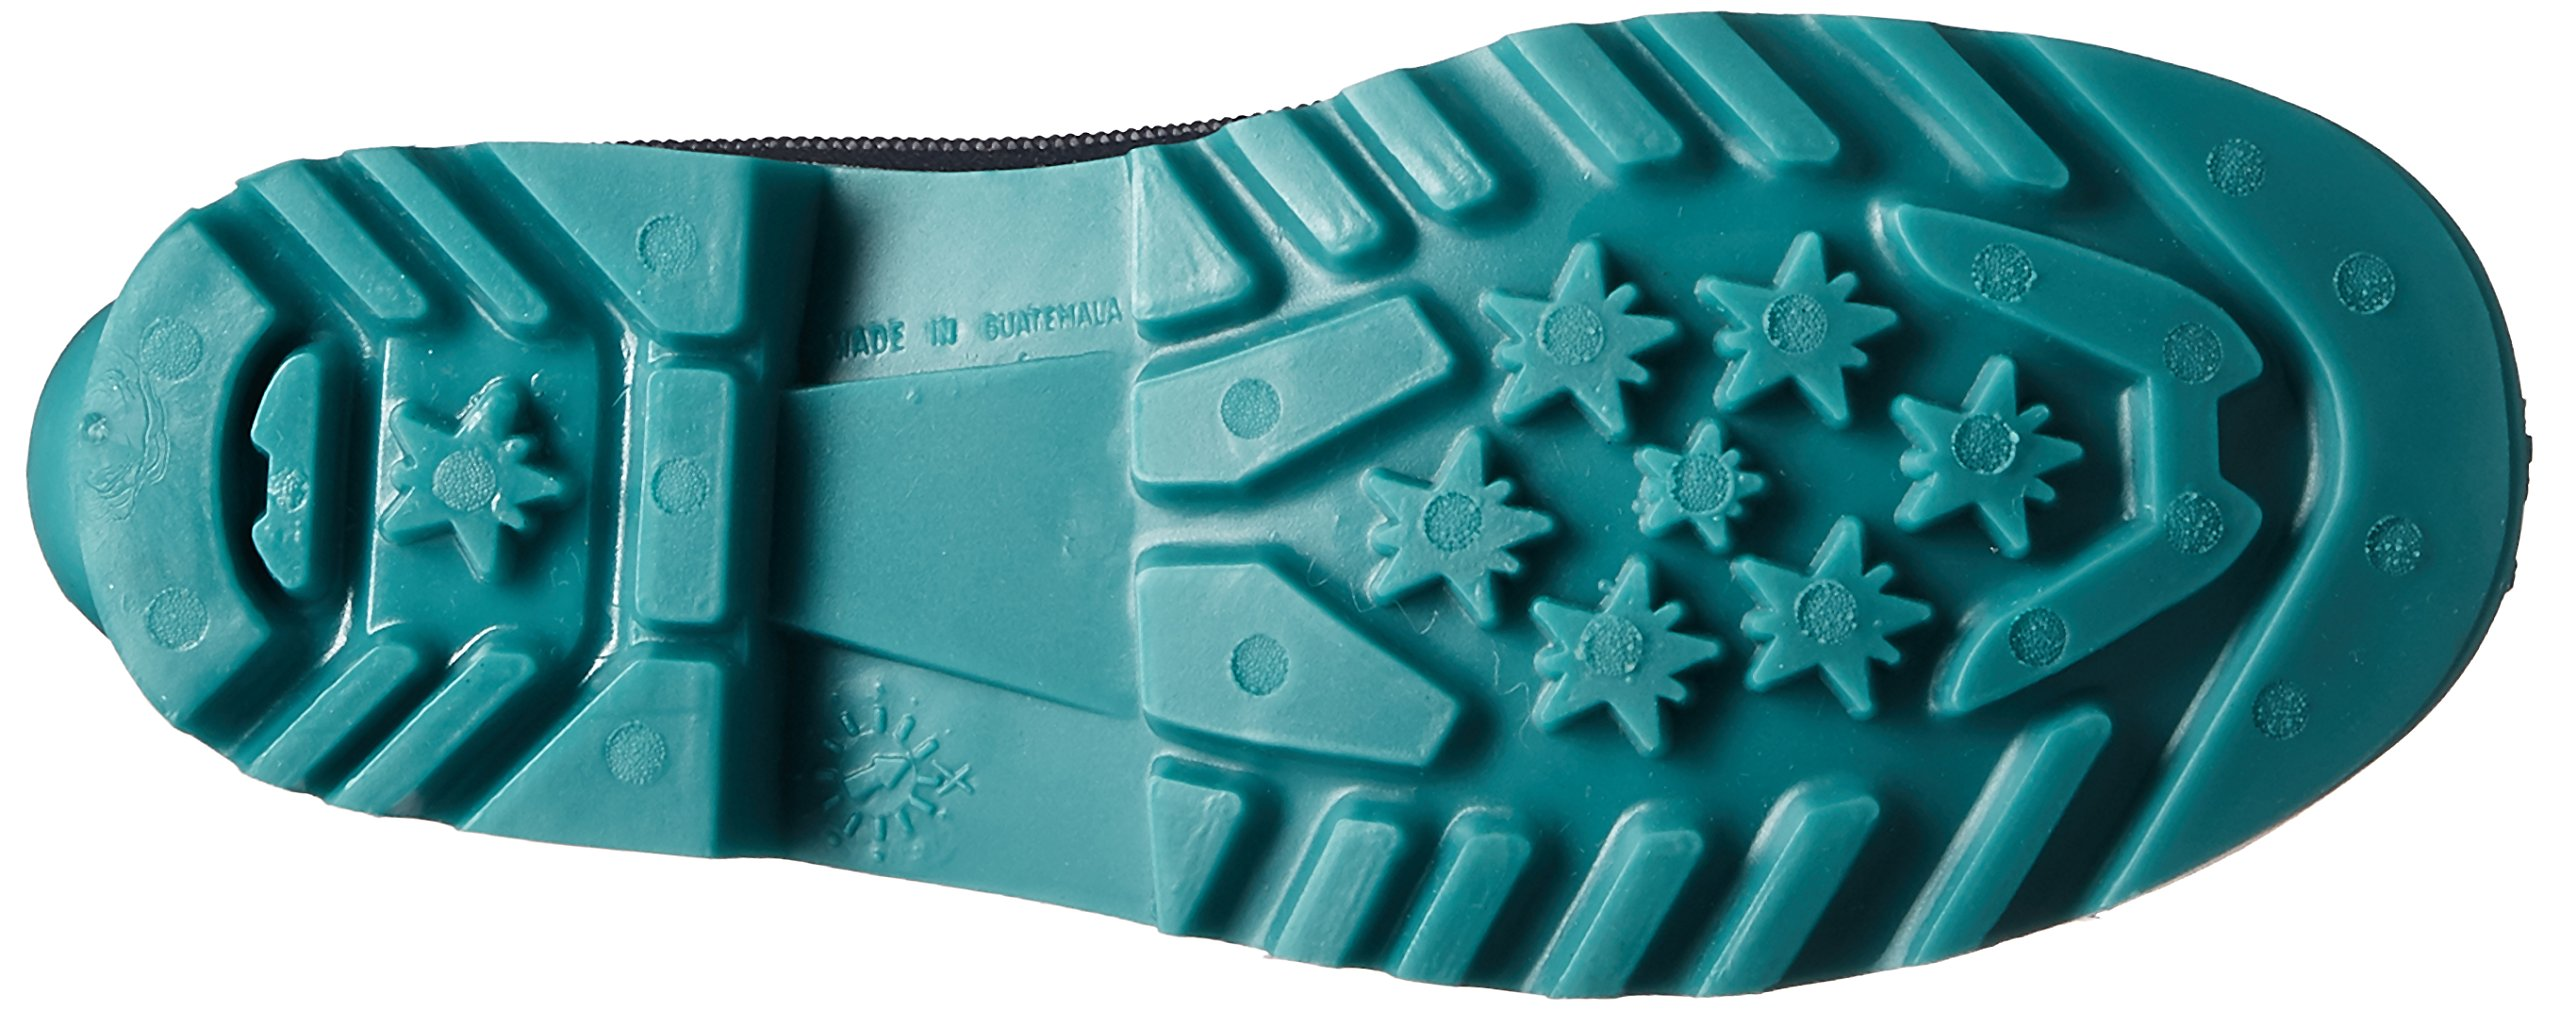 STORMTRACKS 11768.03 Youths' Boot, Size 03, Blue/Green by STORMTRACKS (Image #3)